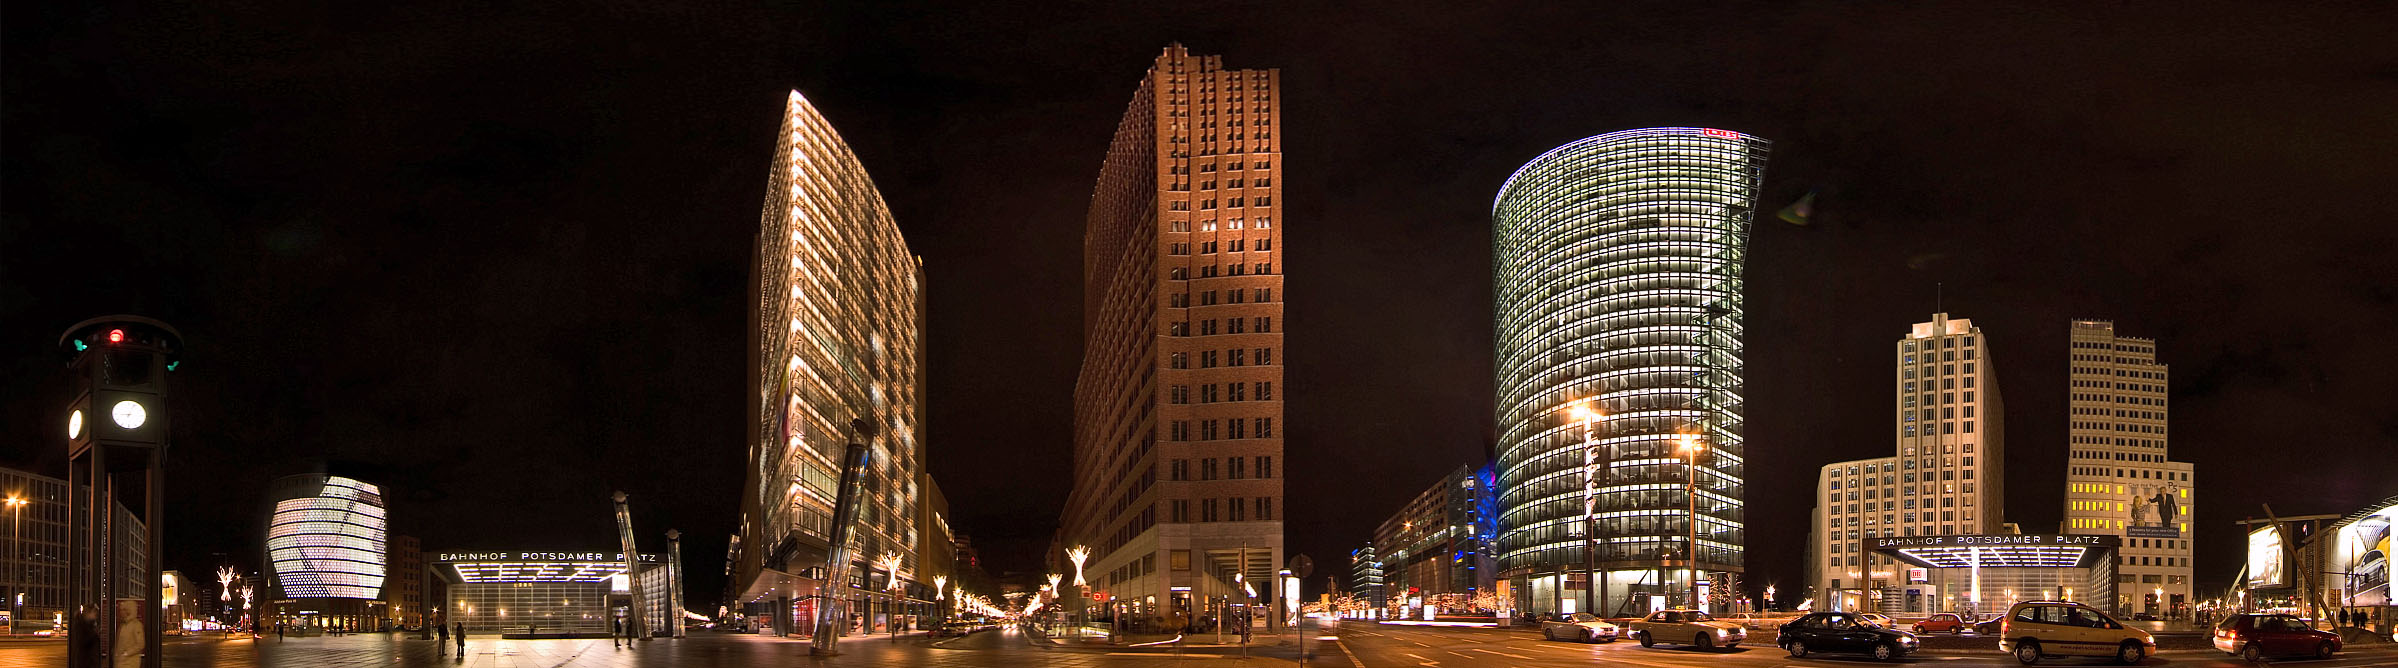 Potsdamer Platz, Sony Center and nearby